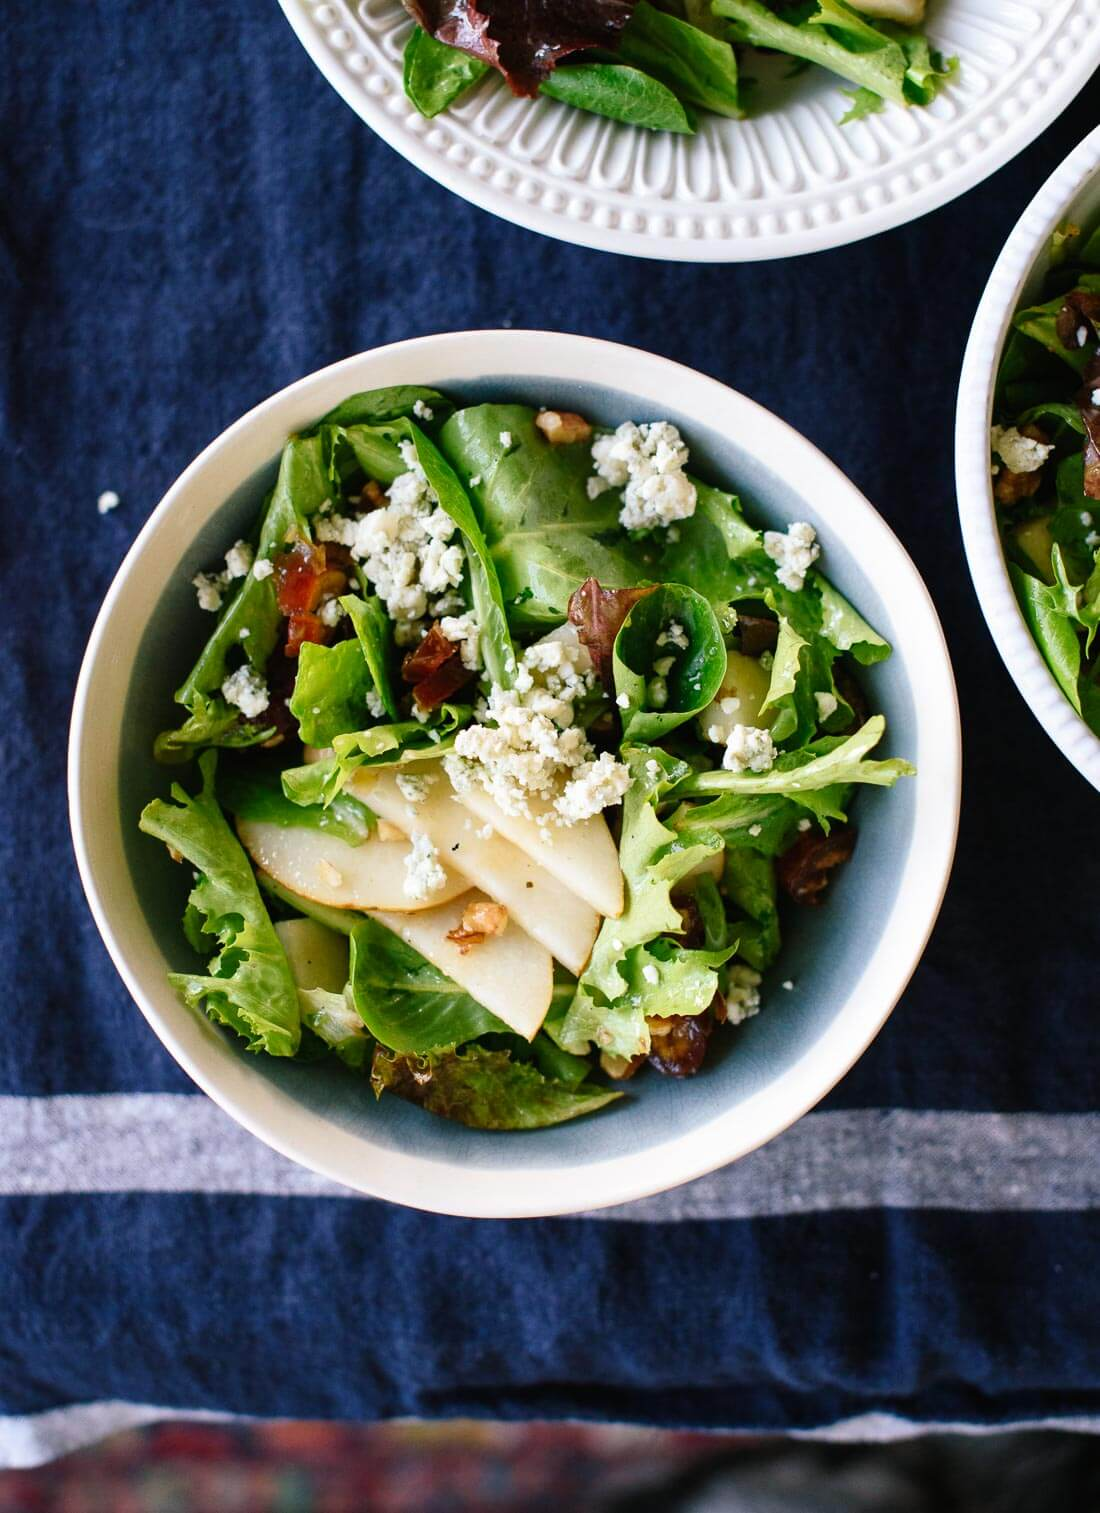 Pear, Date & Walnut Salad with Blue Cheese